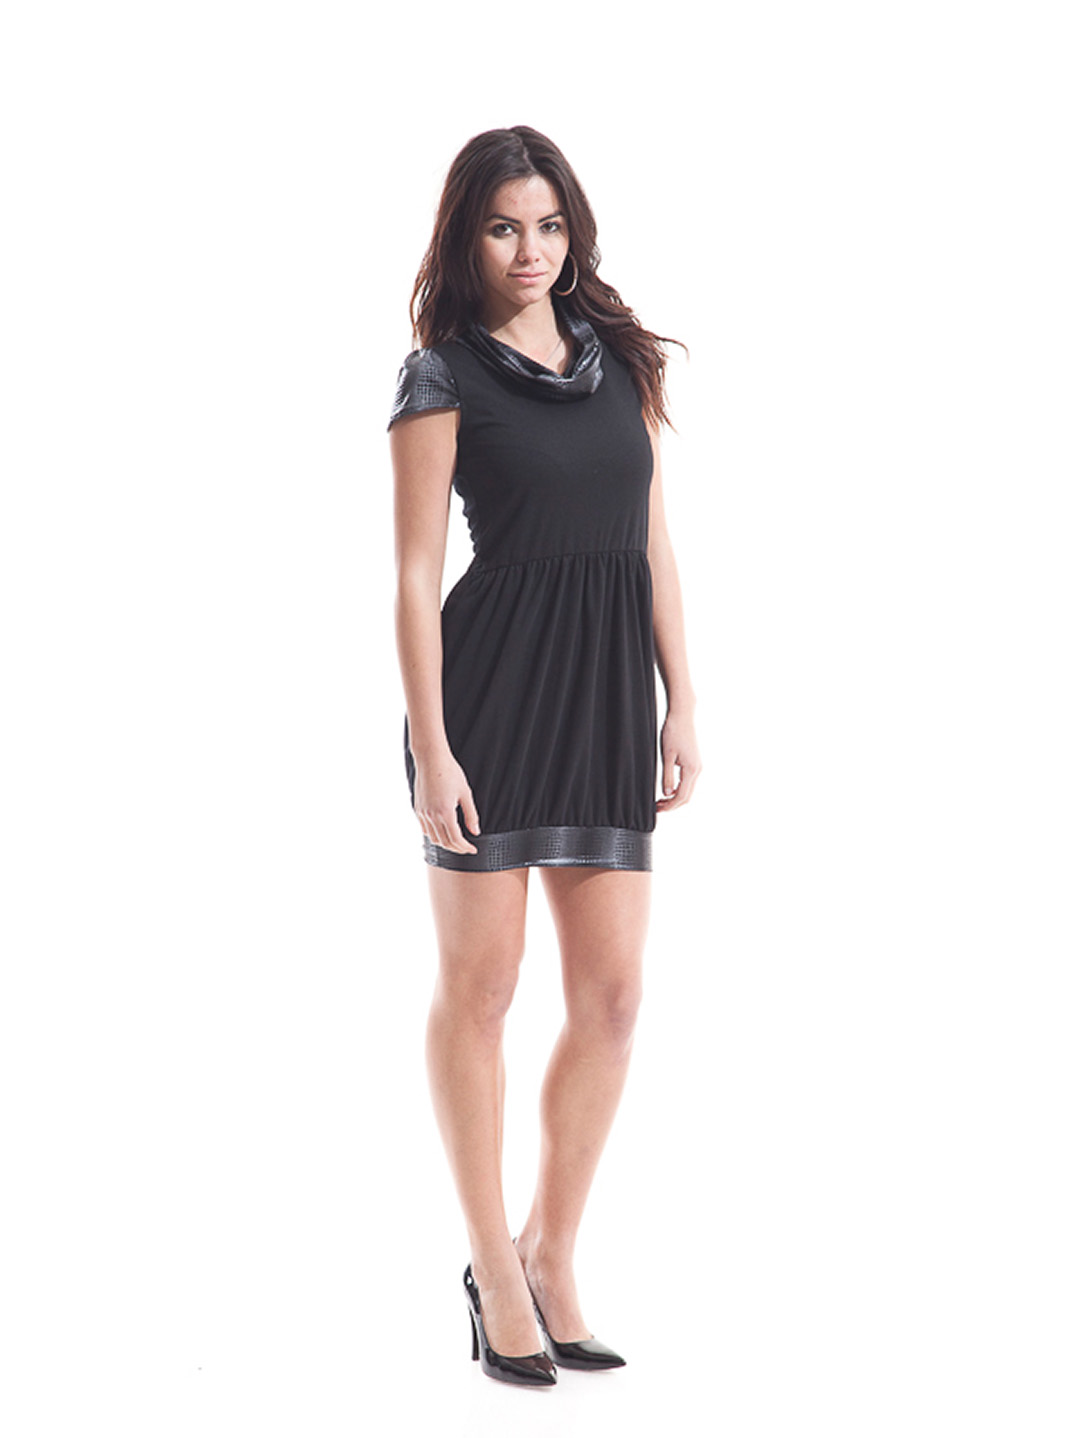 Women Short Dresses  Dress images